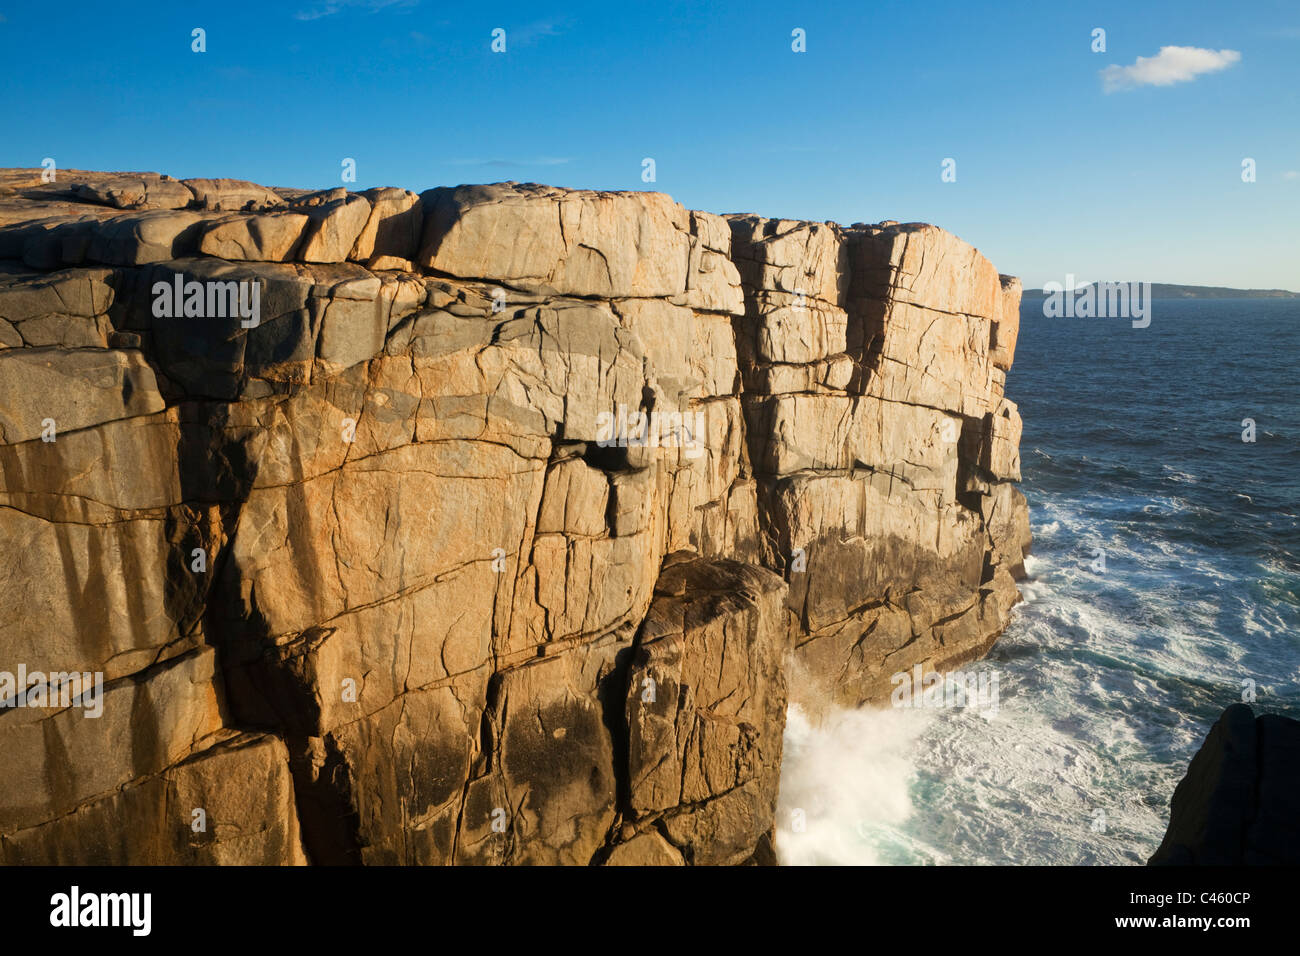 Rugged coastline at The Gap, Torndirrup National Park, Albany, Western Australia, Australia - Stock Image